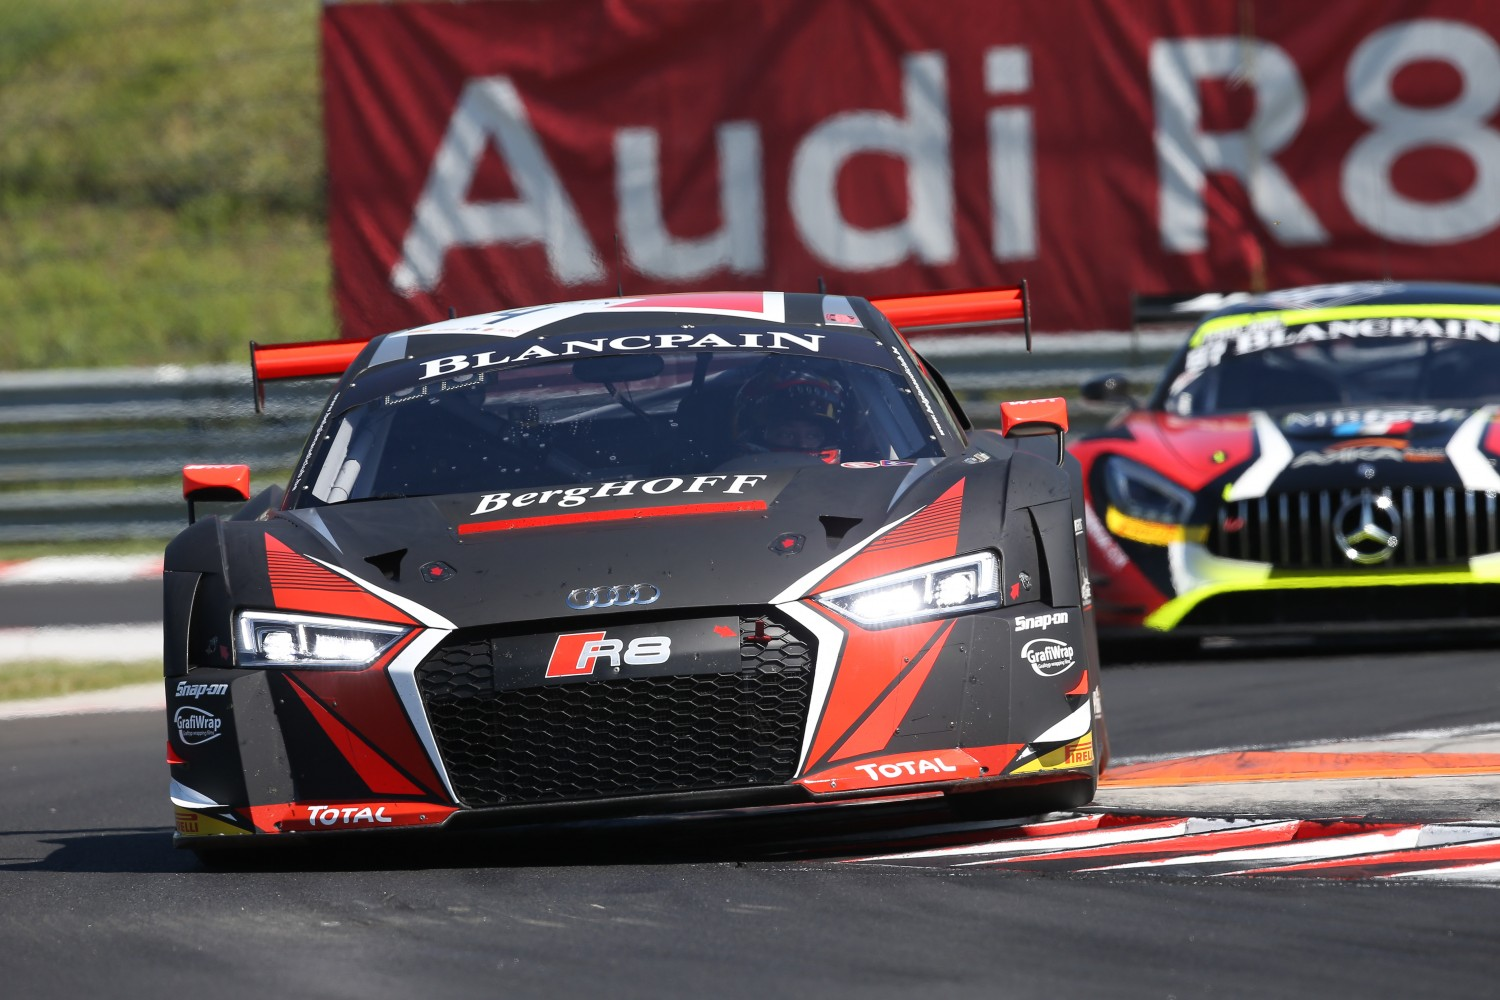 Frijns pips Schmid to pace Free Practice 1 in Hungary